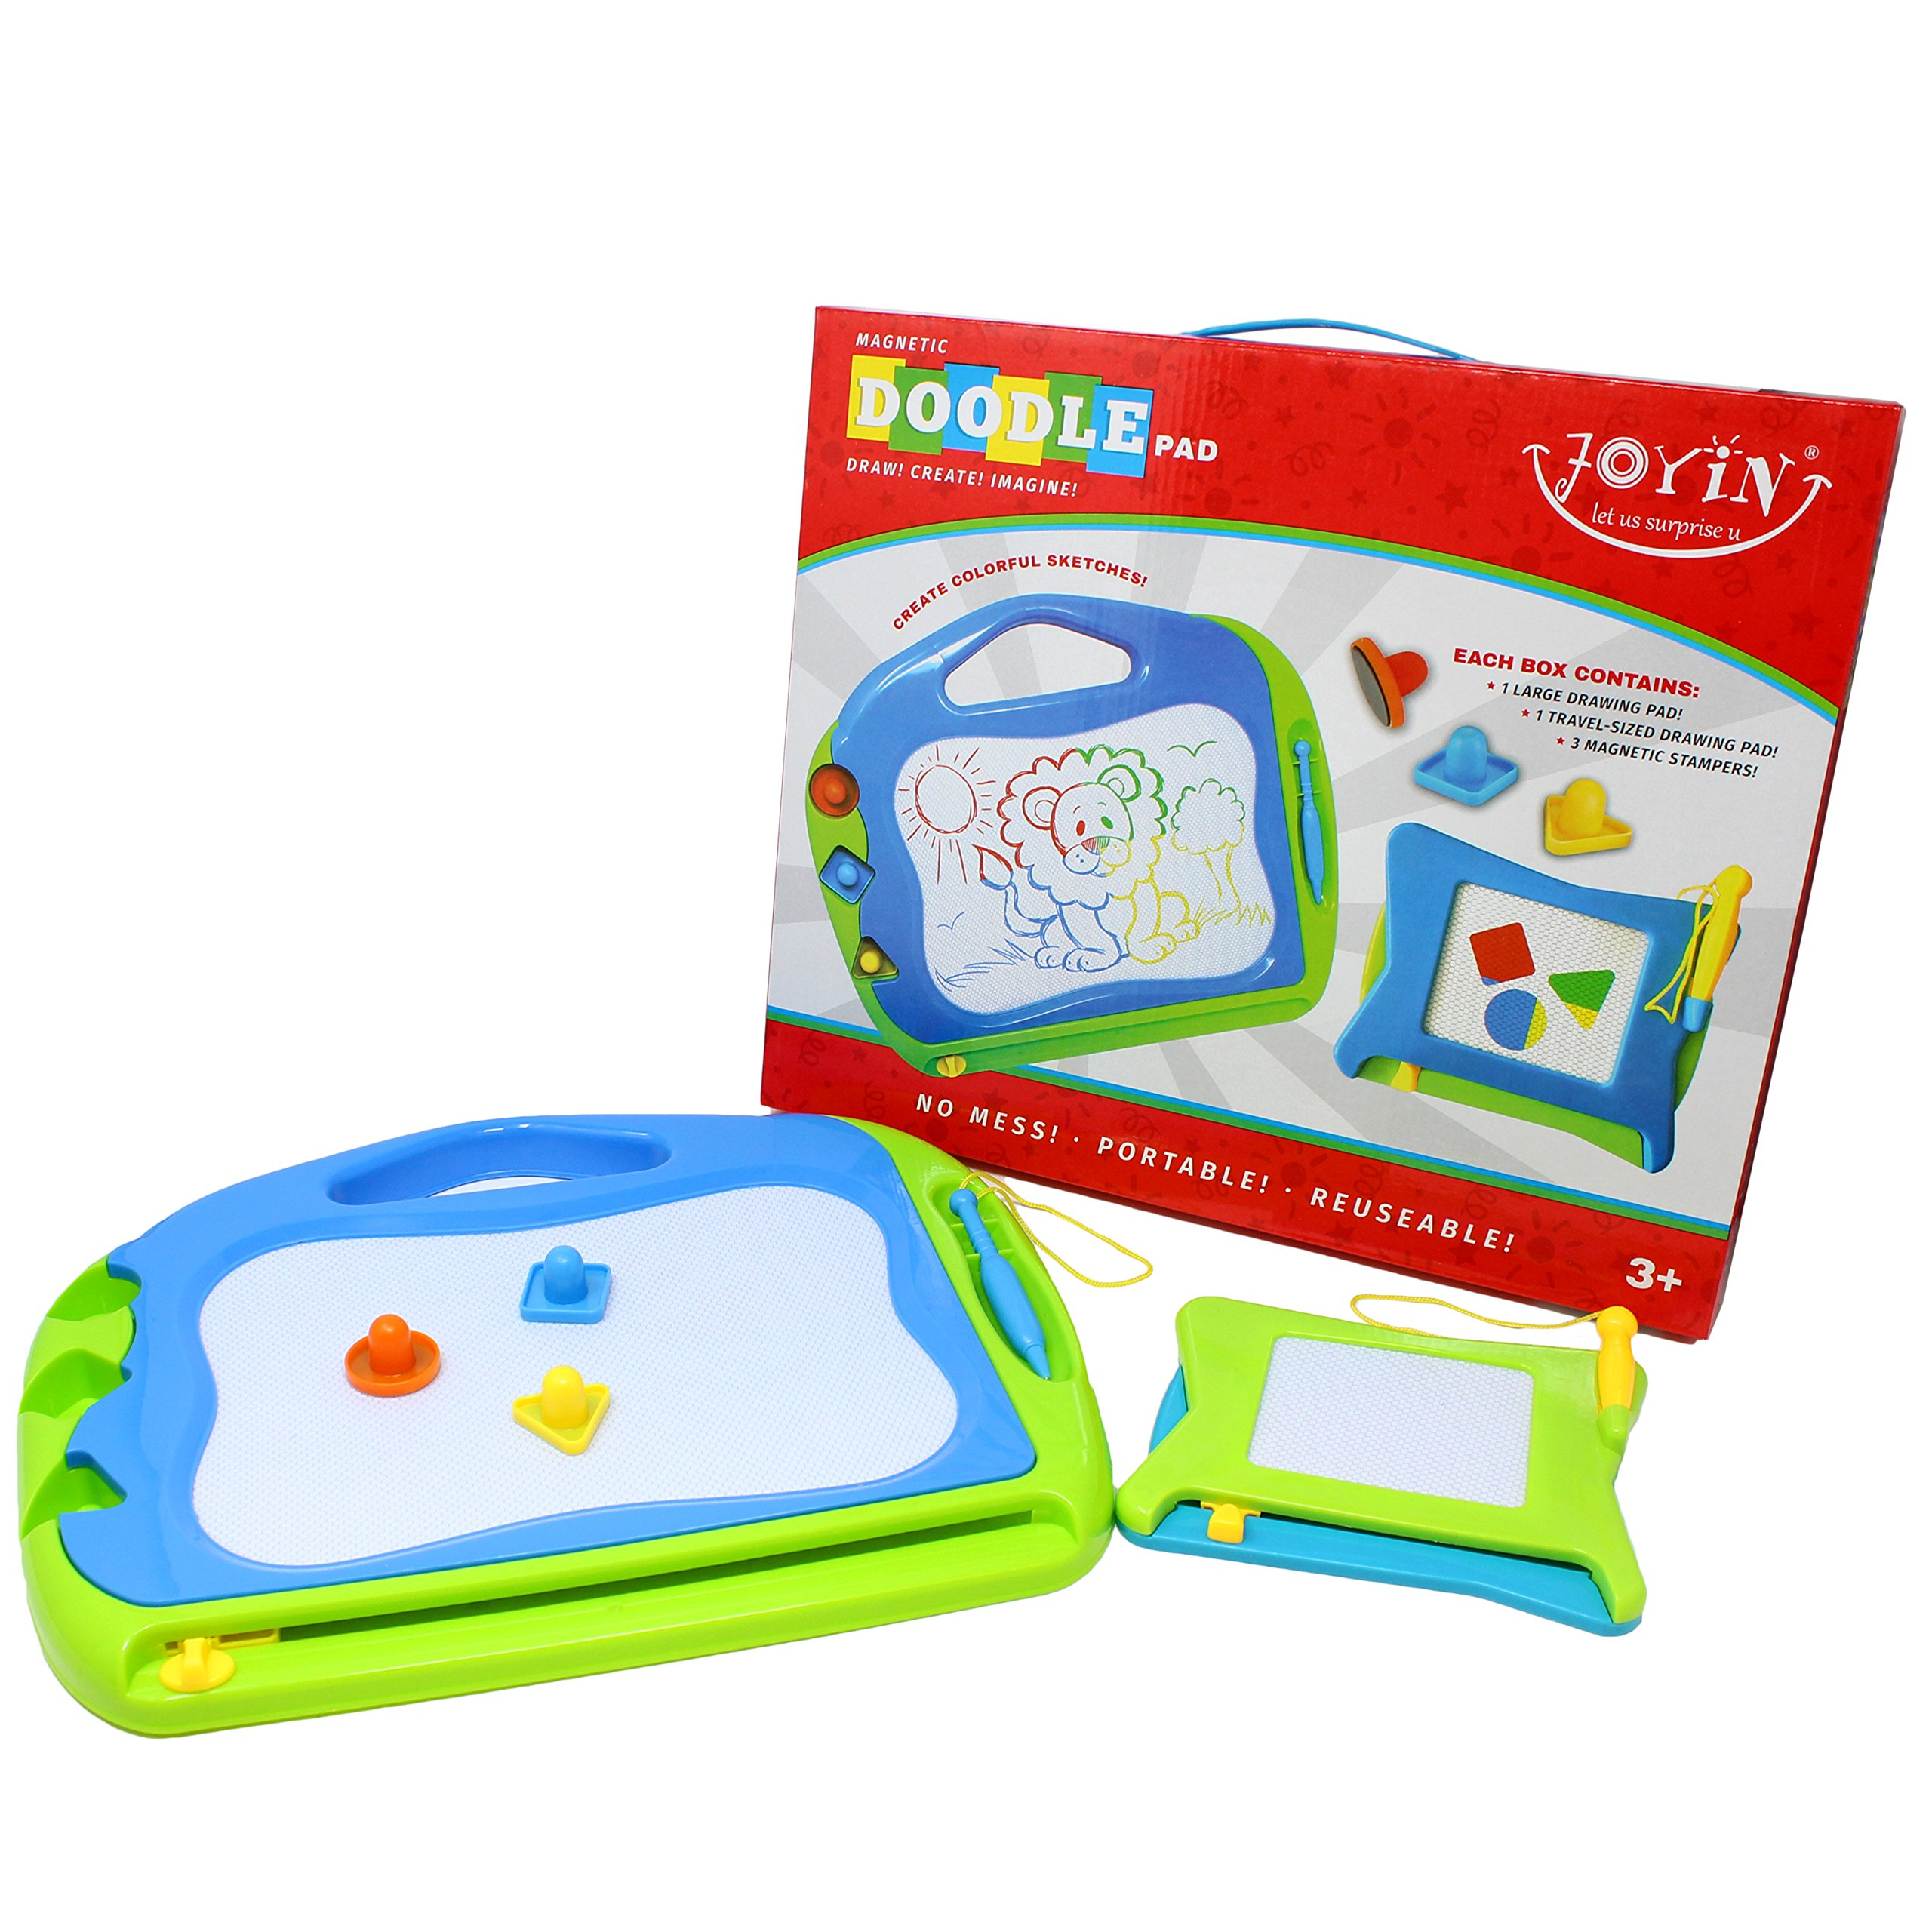 JOYIN 2 Magnetic Drawing Boards with Multi-Colors Drawing Screens Erasable Doodle Sketch Magna Board for Writing, Sketching, Travel Size Gaming Pad, Educational Learning and Classroom Prizes. by JOYIN (Image #4)